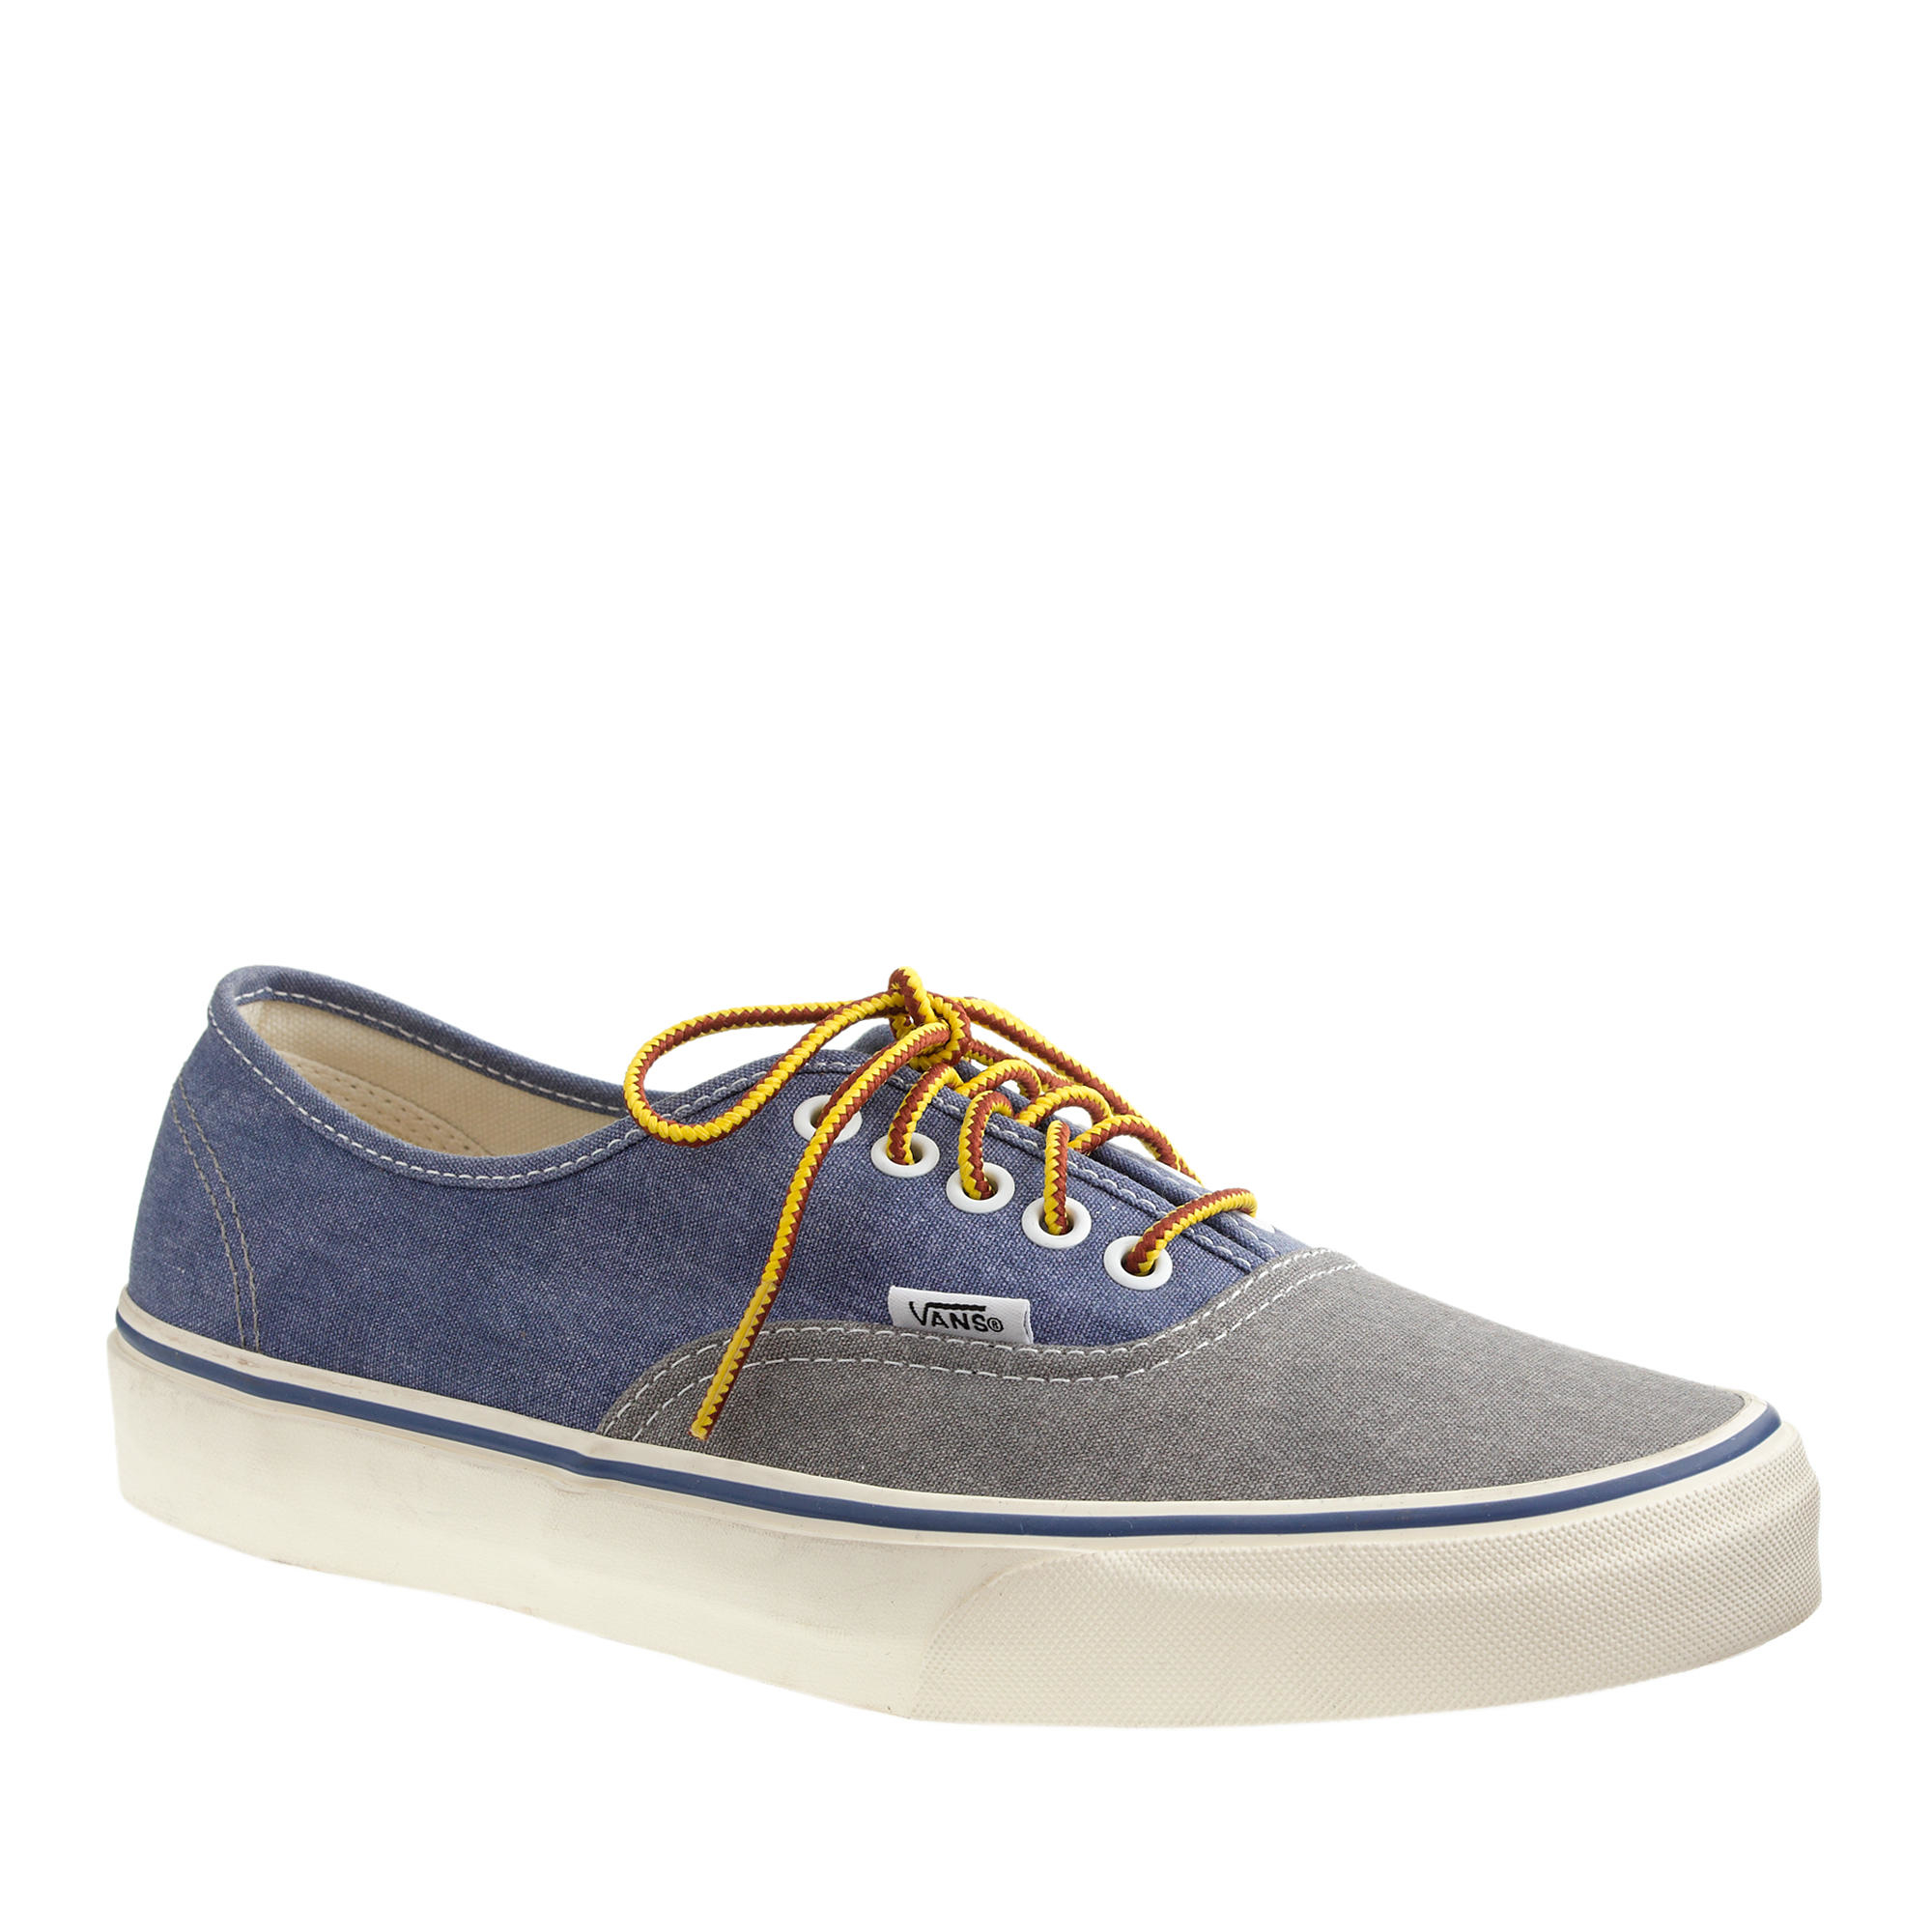 3337150e8b Lyst - J.Crew Men s Vans Washed Canvas Authentic Sneakers In Two ...